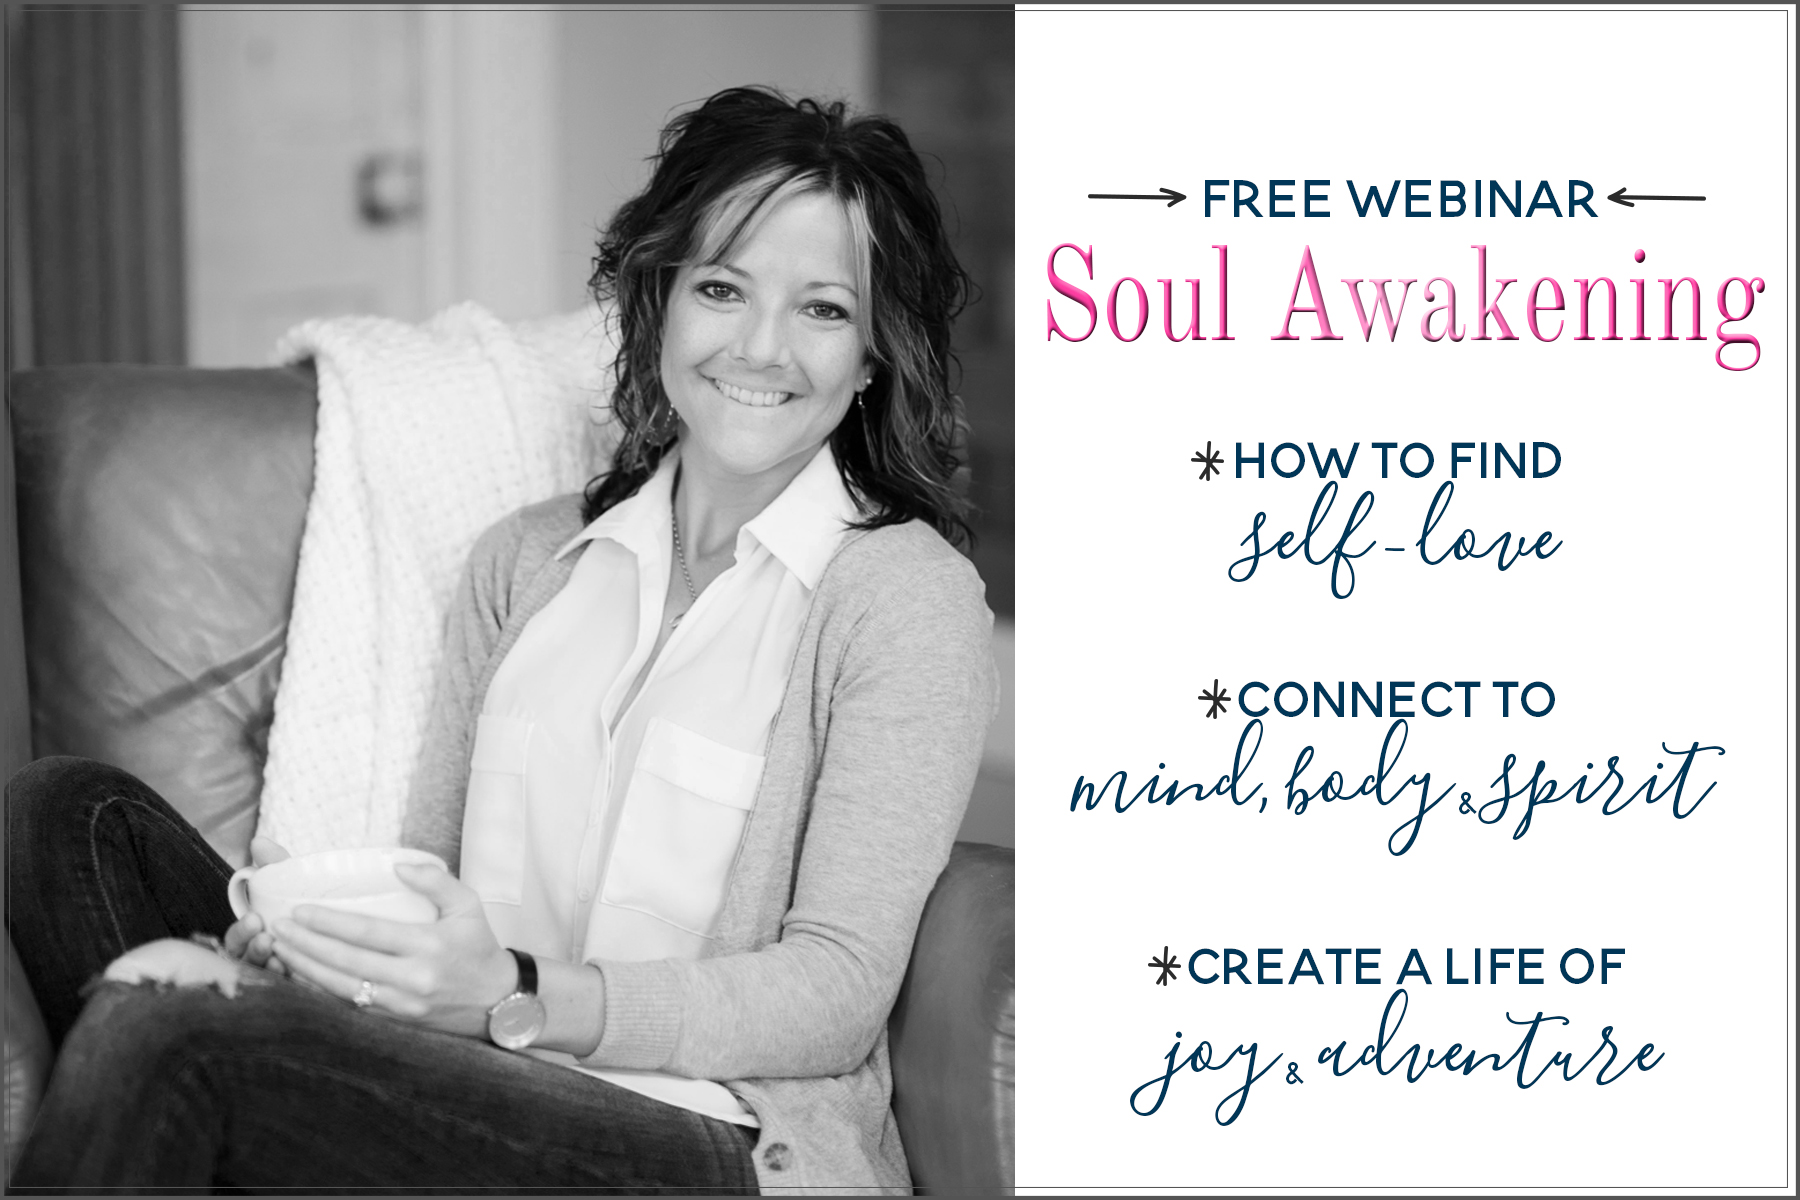 Soul Awakening Workshop Webinar with Audrey Michel